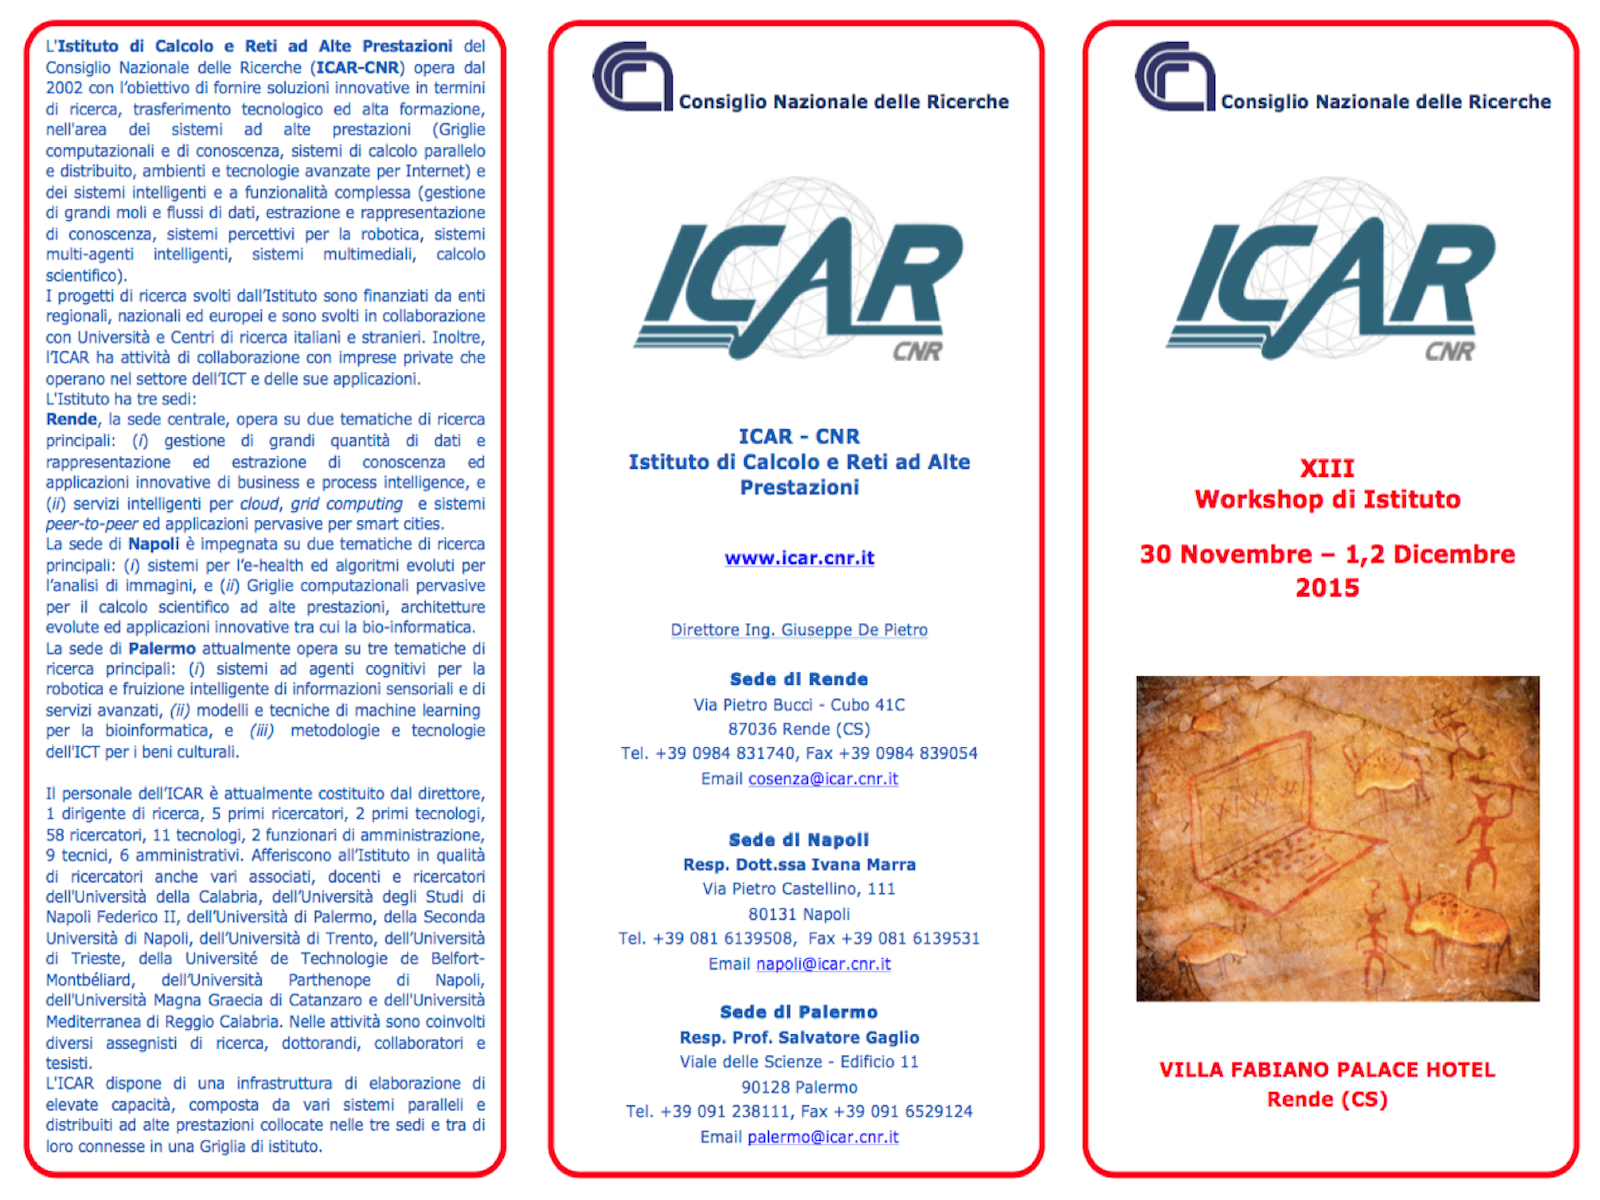 XIII WORKSHOP ICAR